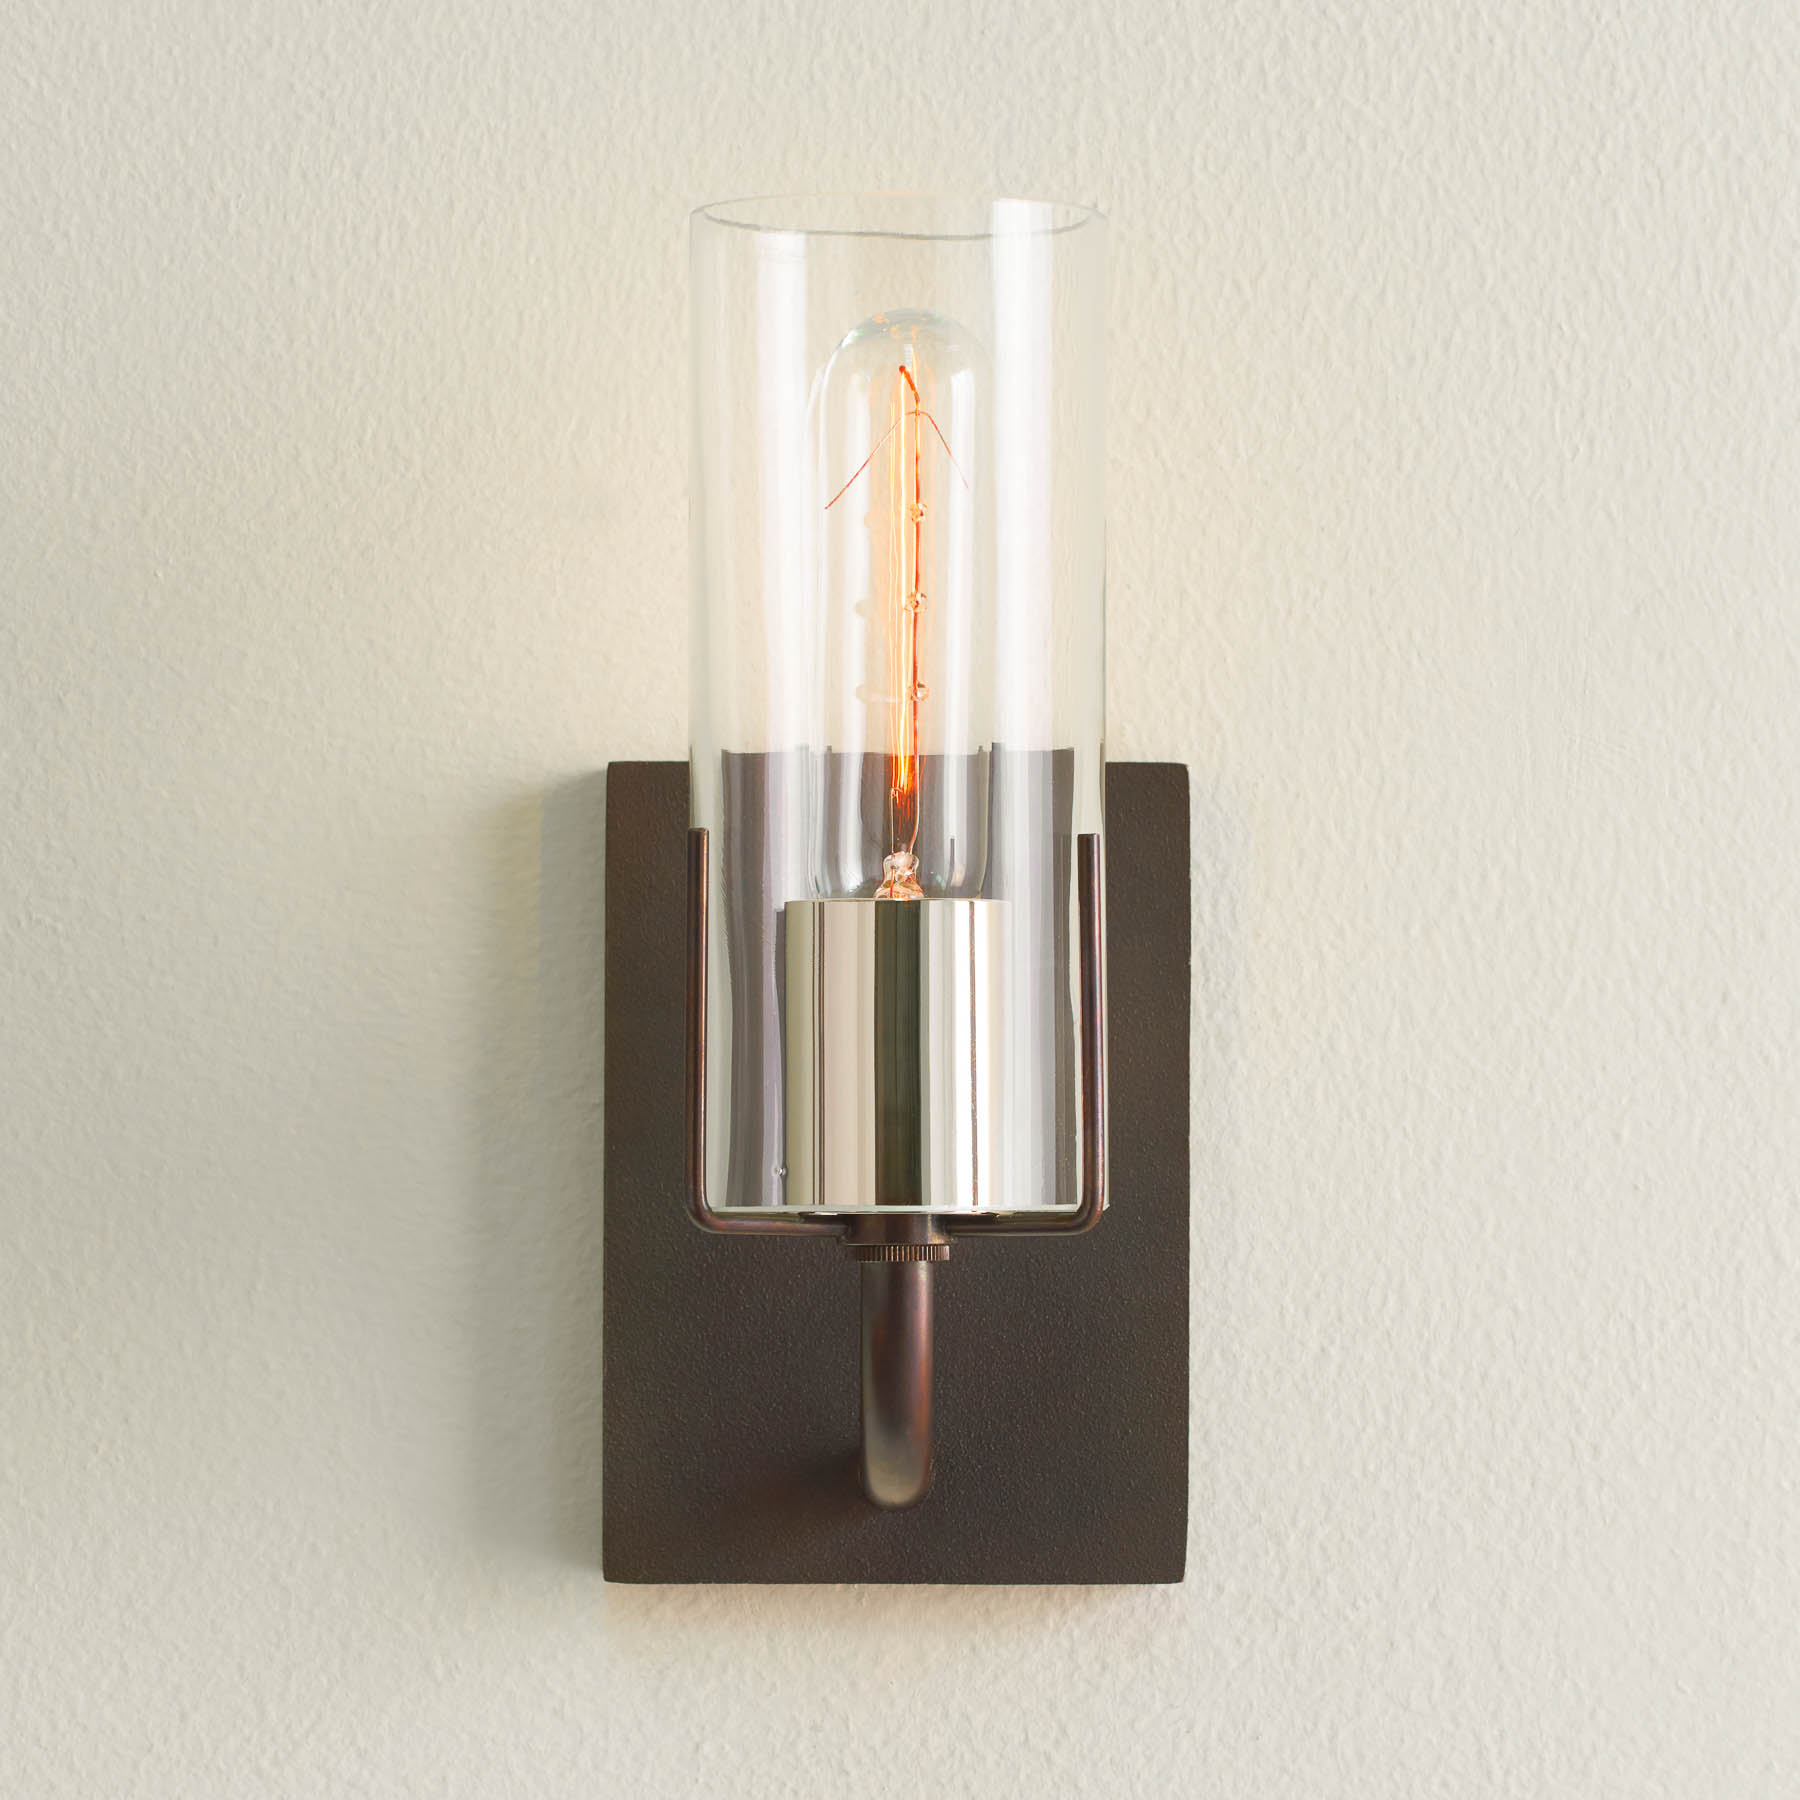 Evergreen Sconce with silver sleeve, wall sconces